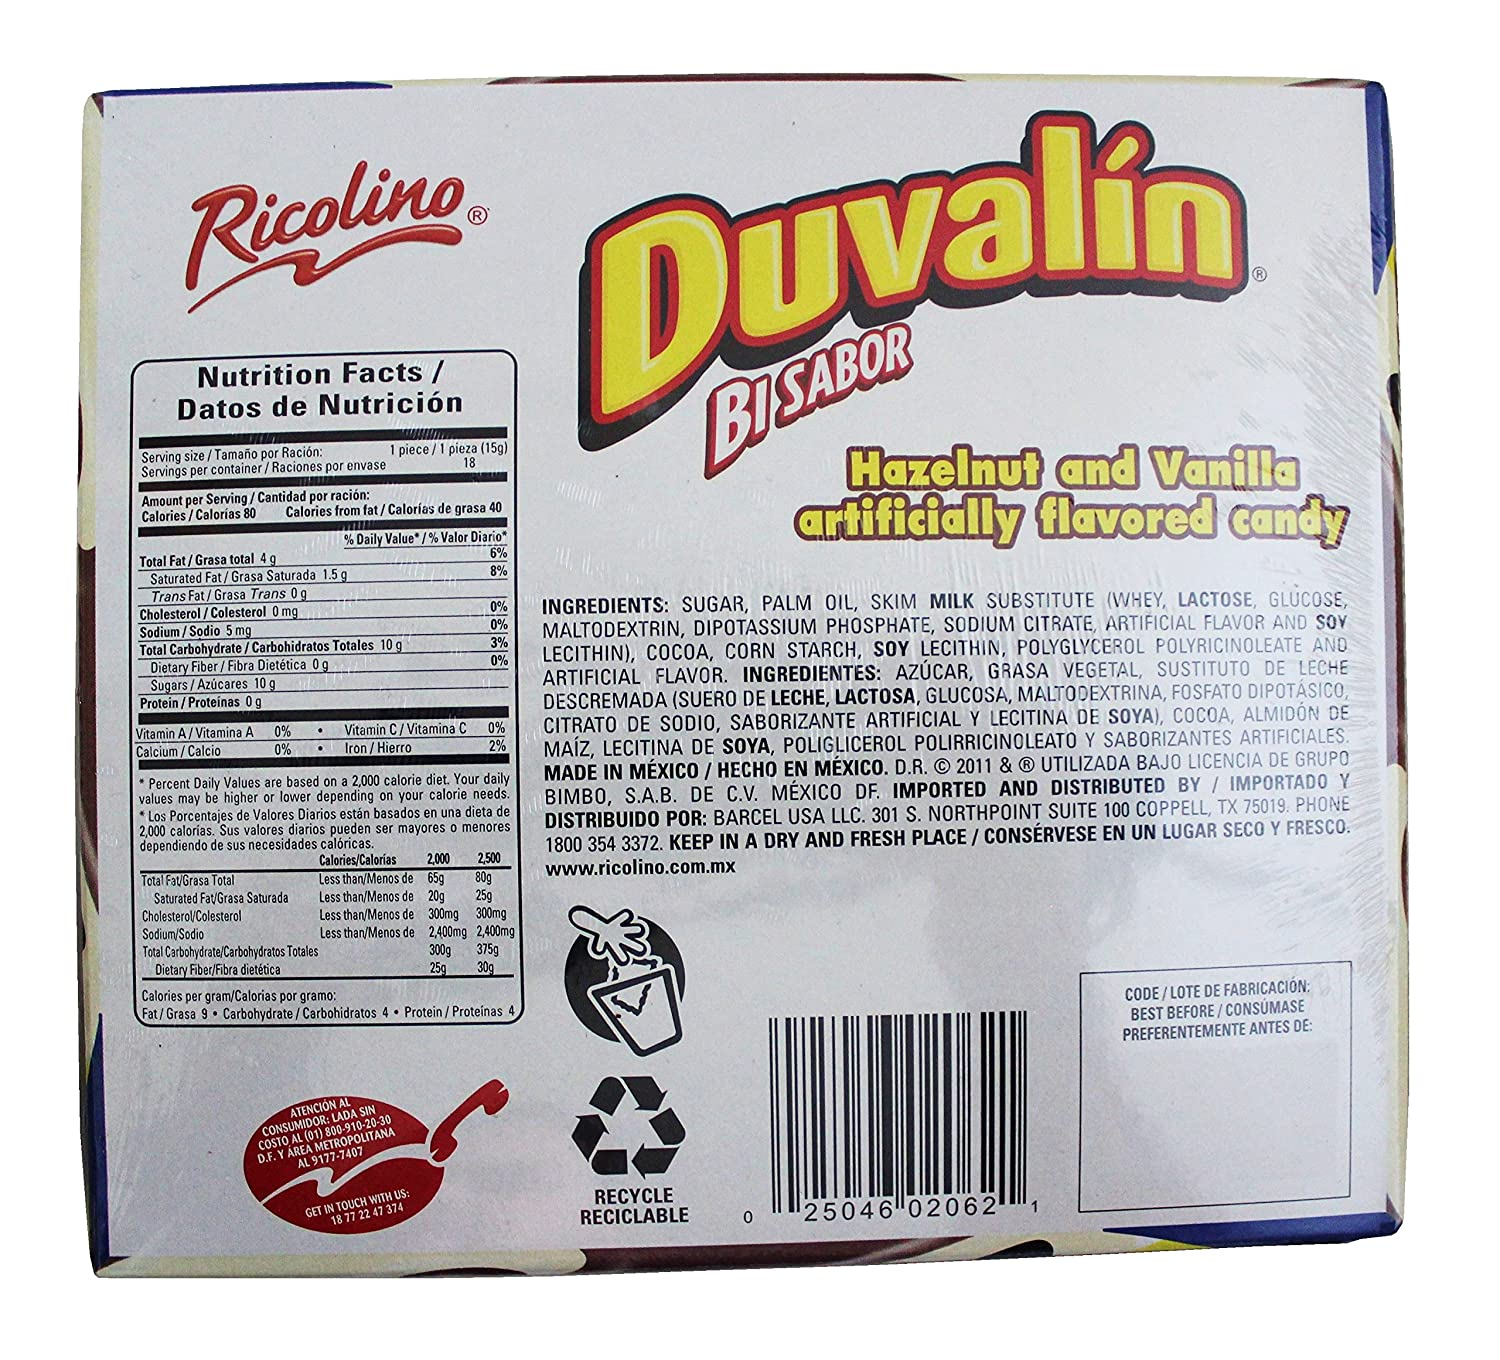 Amazon.com : Ricolino Duvalin Bi Flavor Hazelnut Vanilla Spread (2 Pack) : Grocery & Gourmet Food